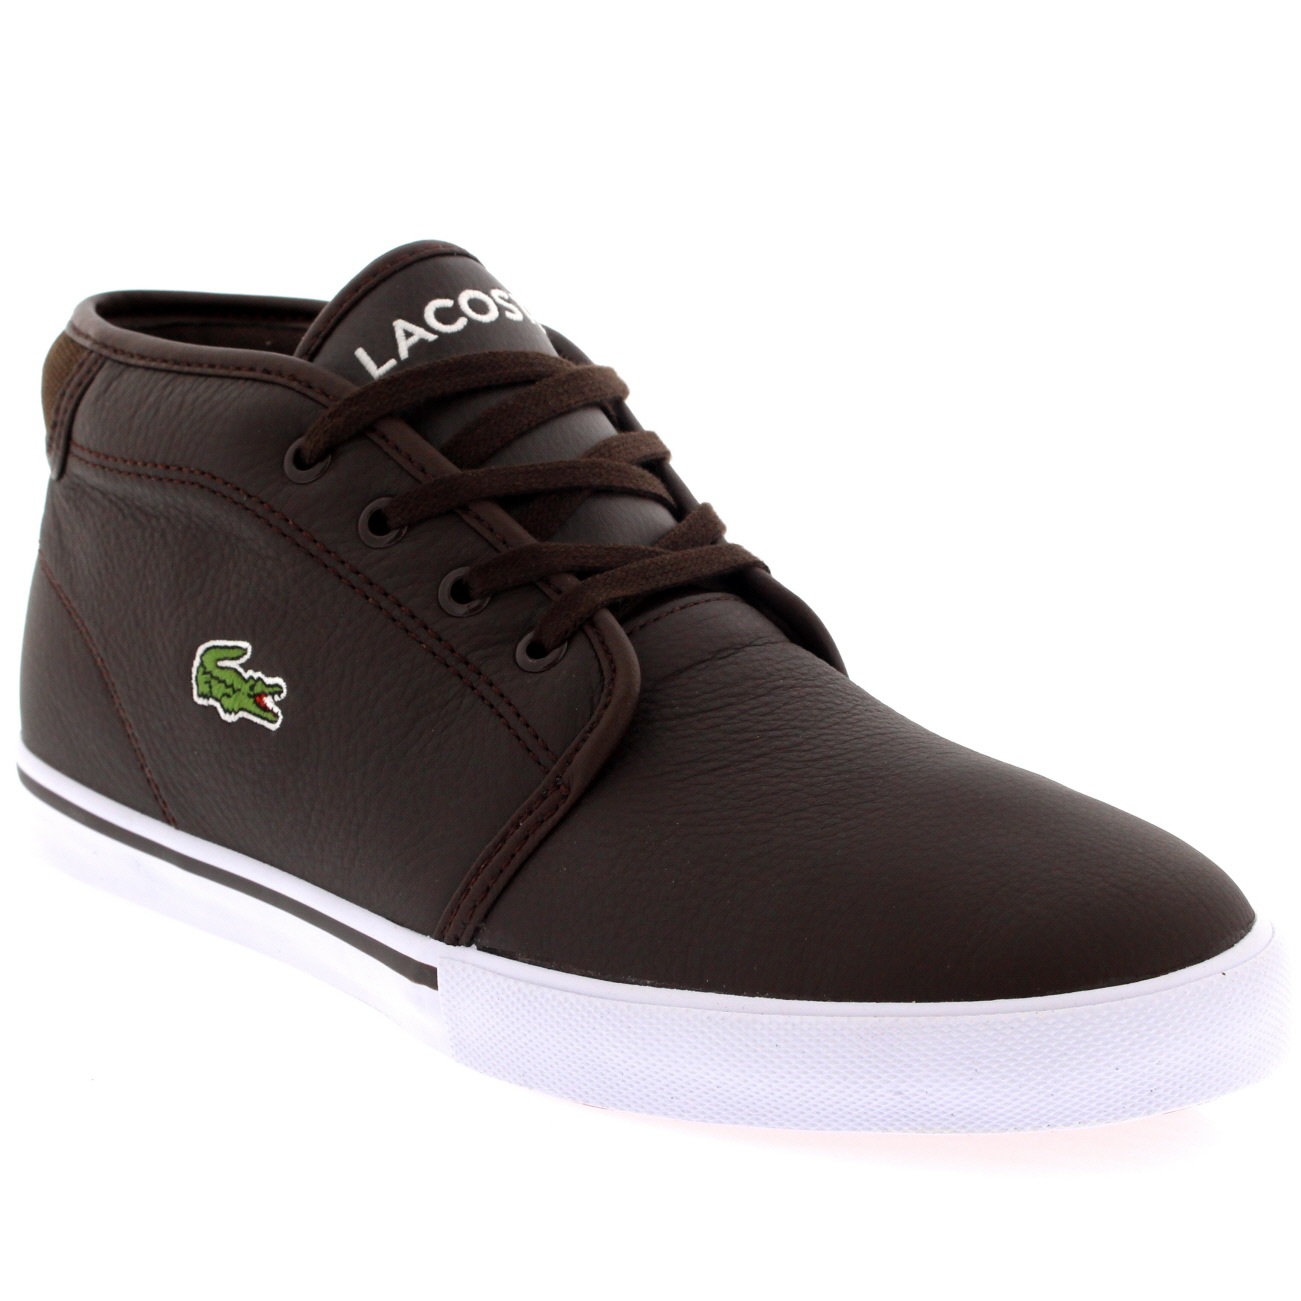 Lacoste Ampthill Leather Trainers